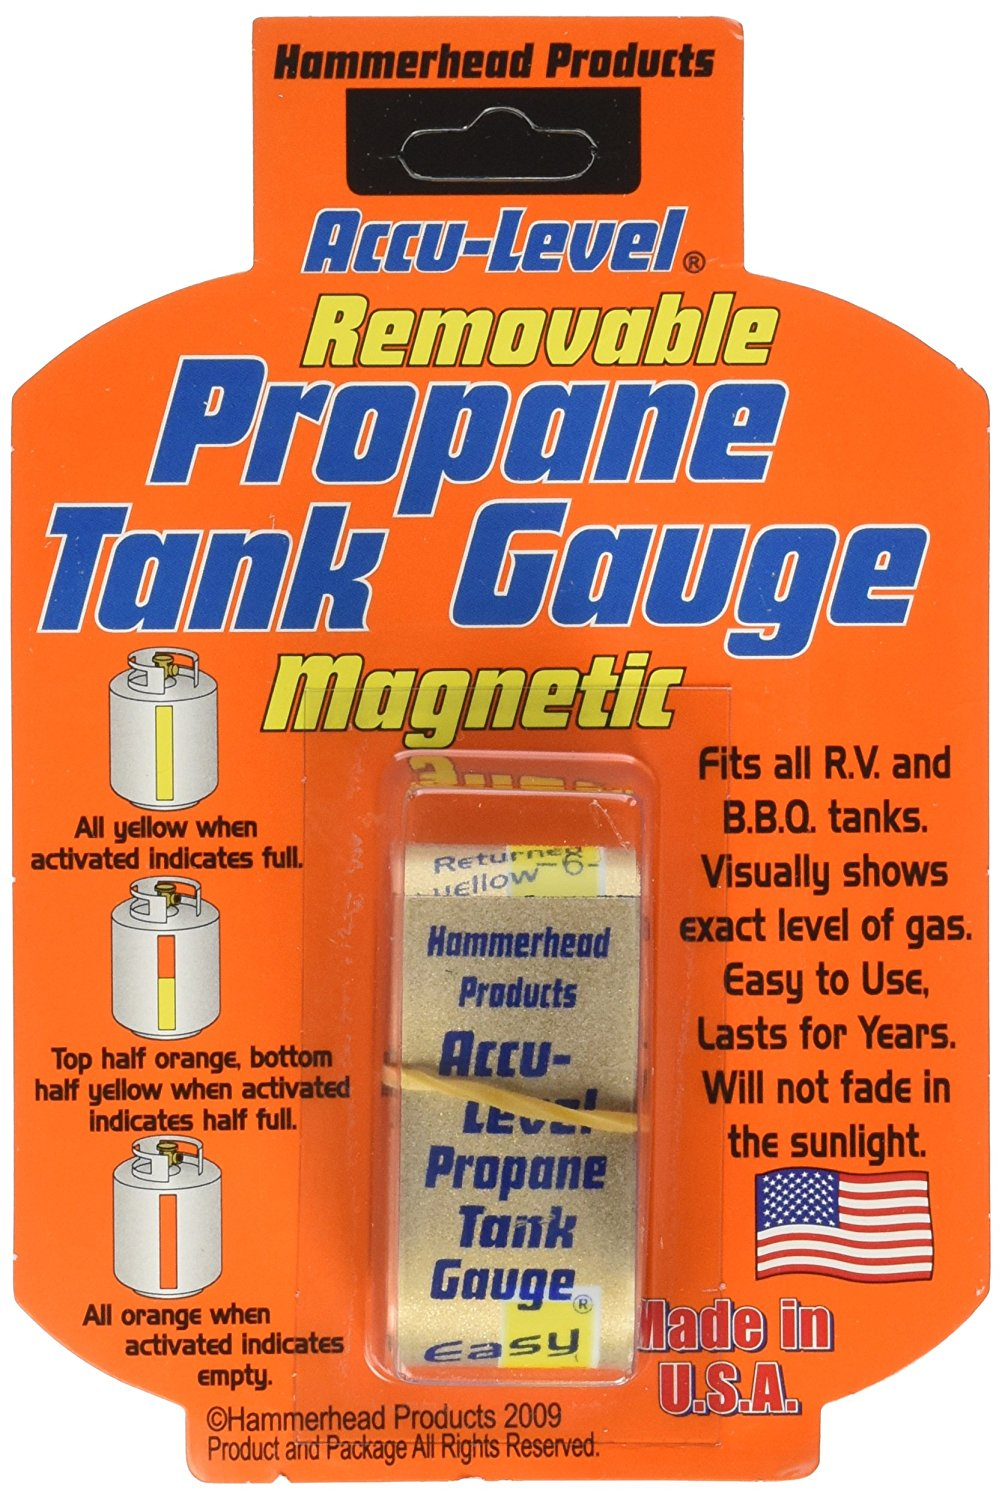 How to Empty a Propane Tank - RV essential